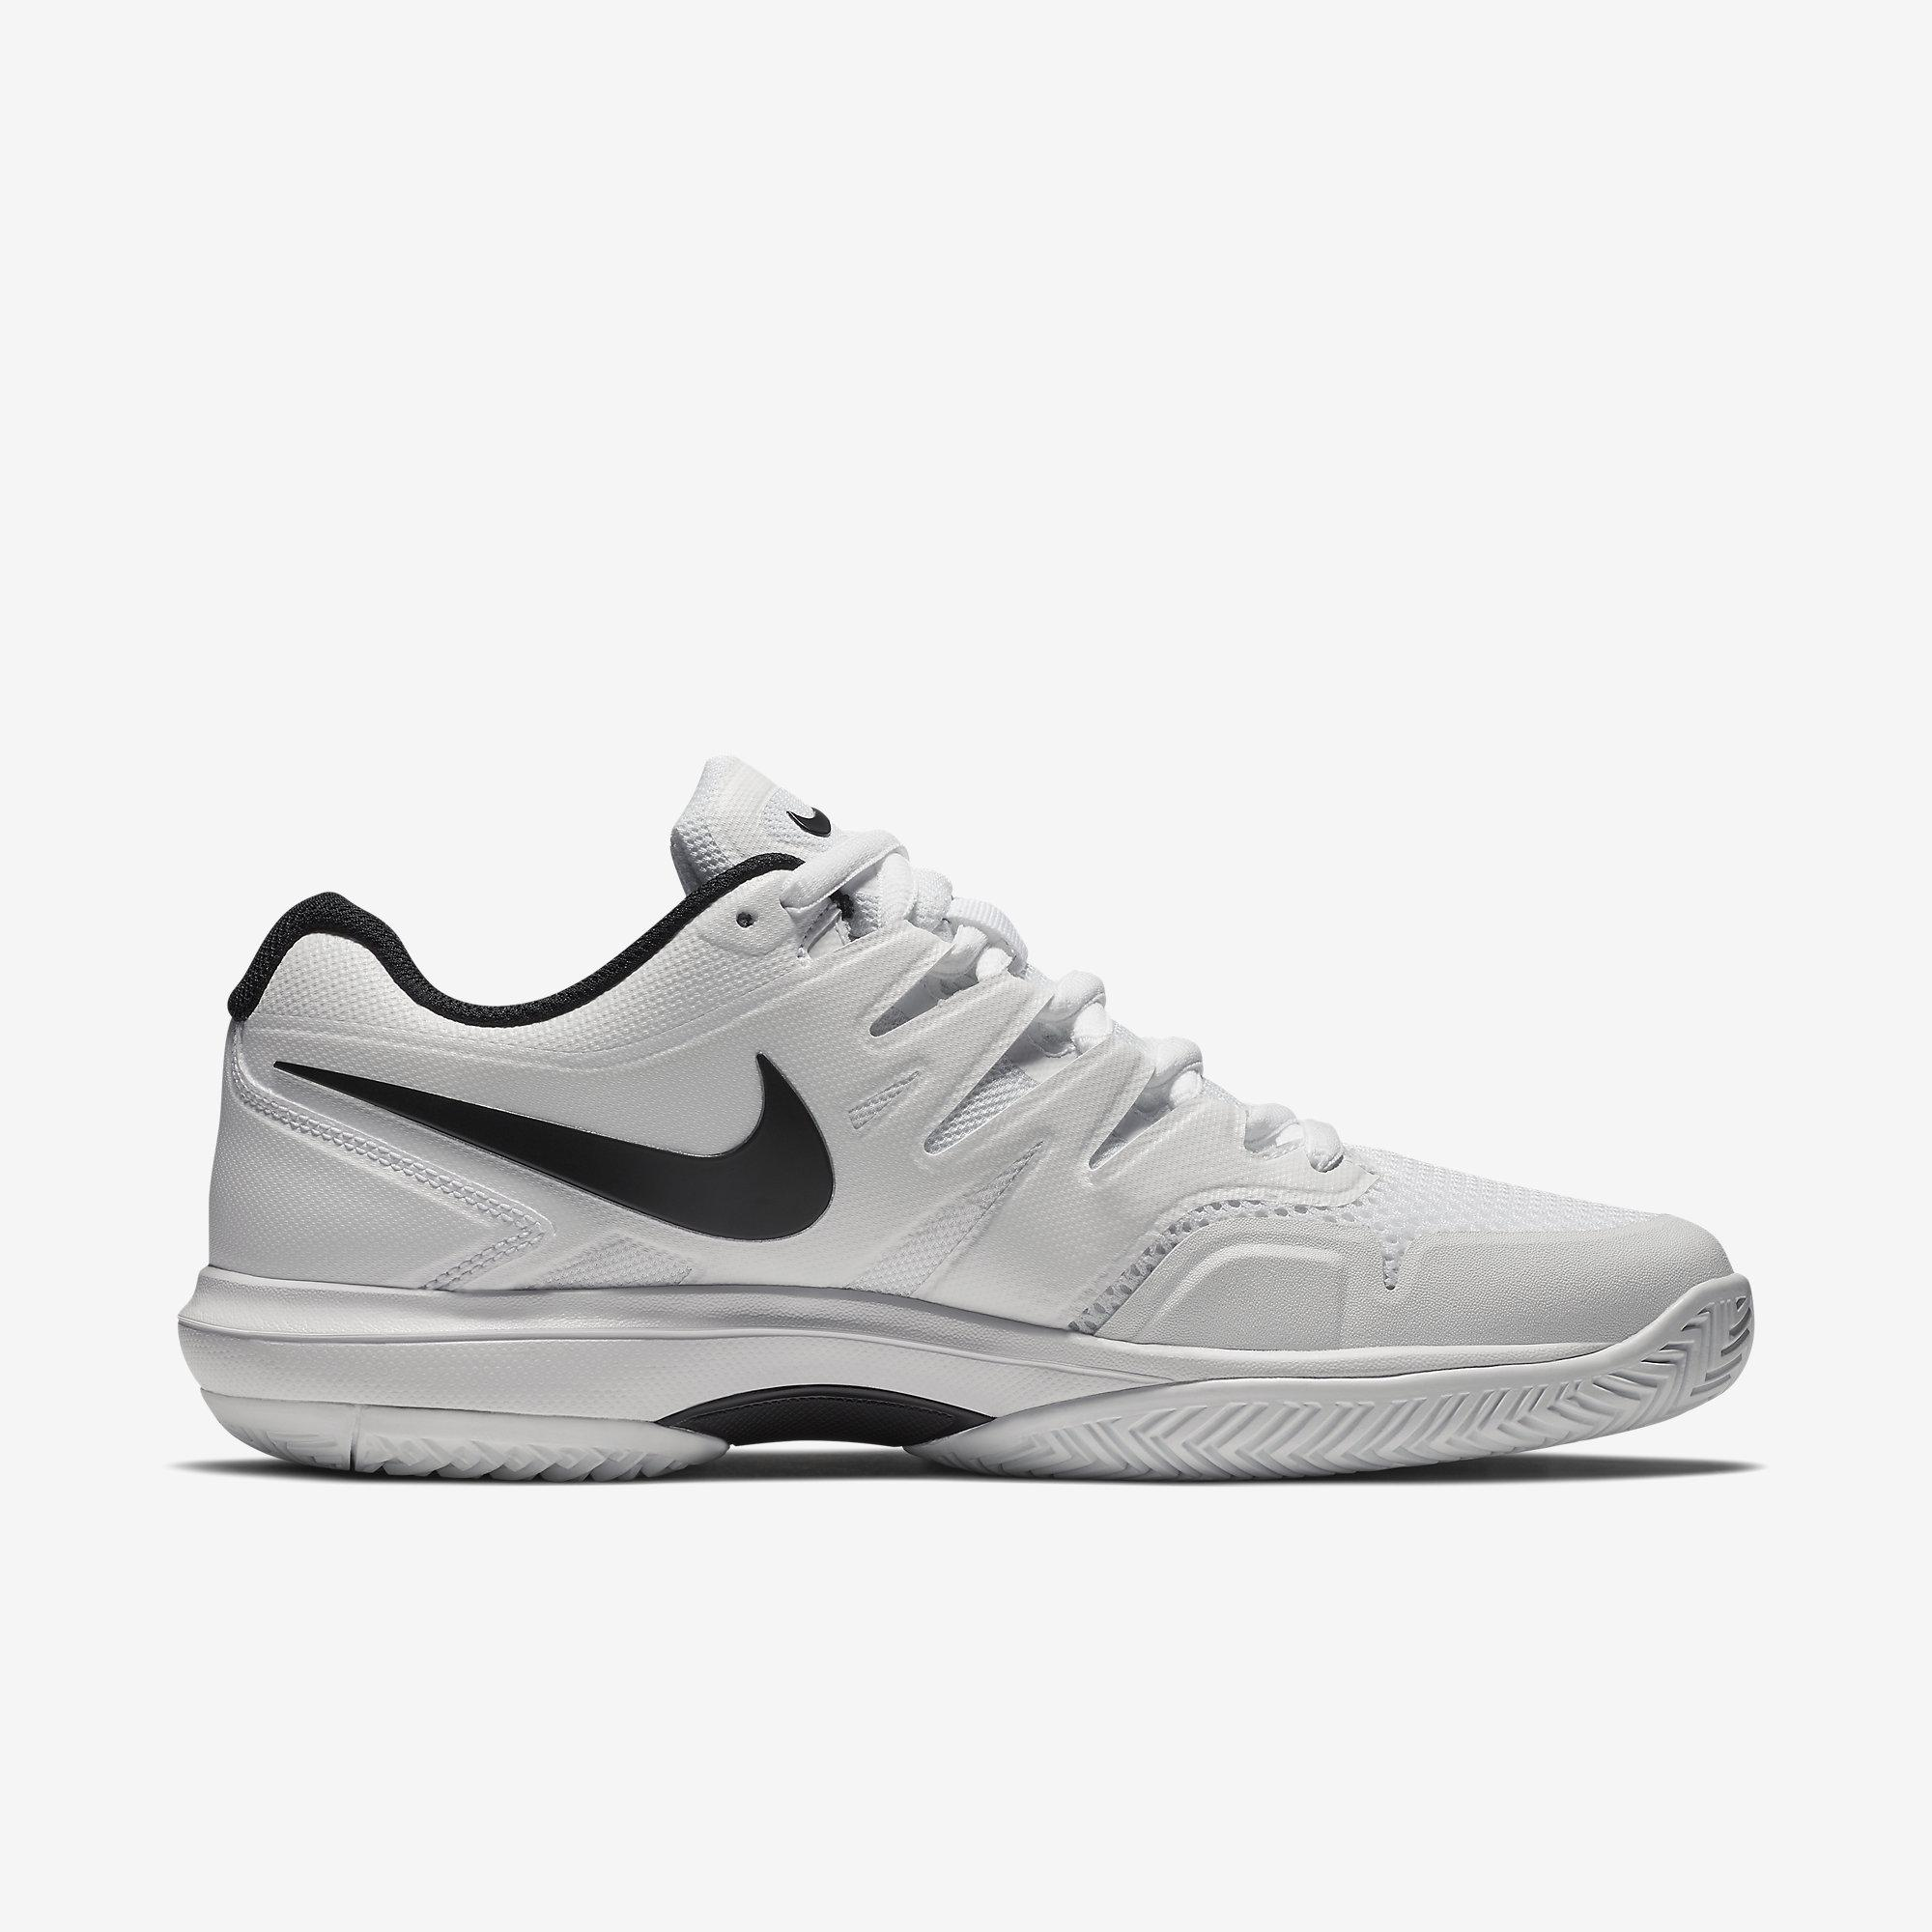 Nike Mens Air Zoom Prestige Tennis Shoes - White Black - Tennisnuts.com ef37408fe